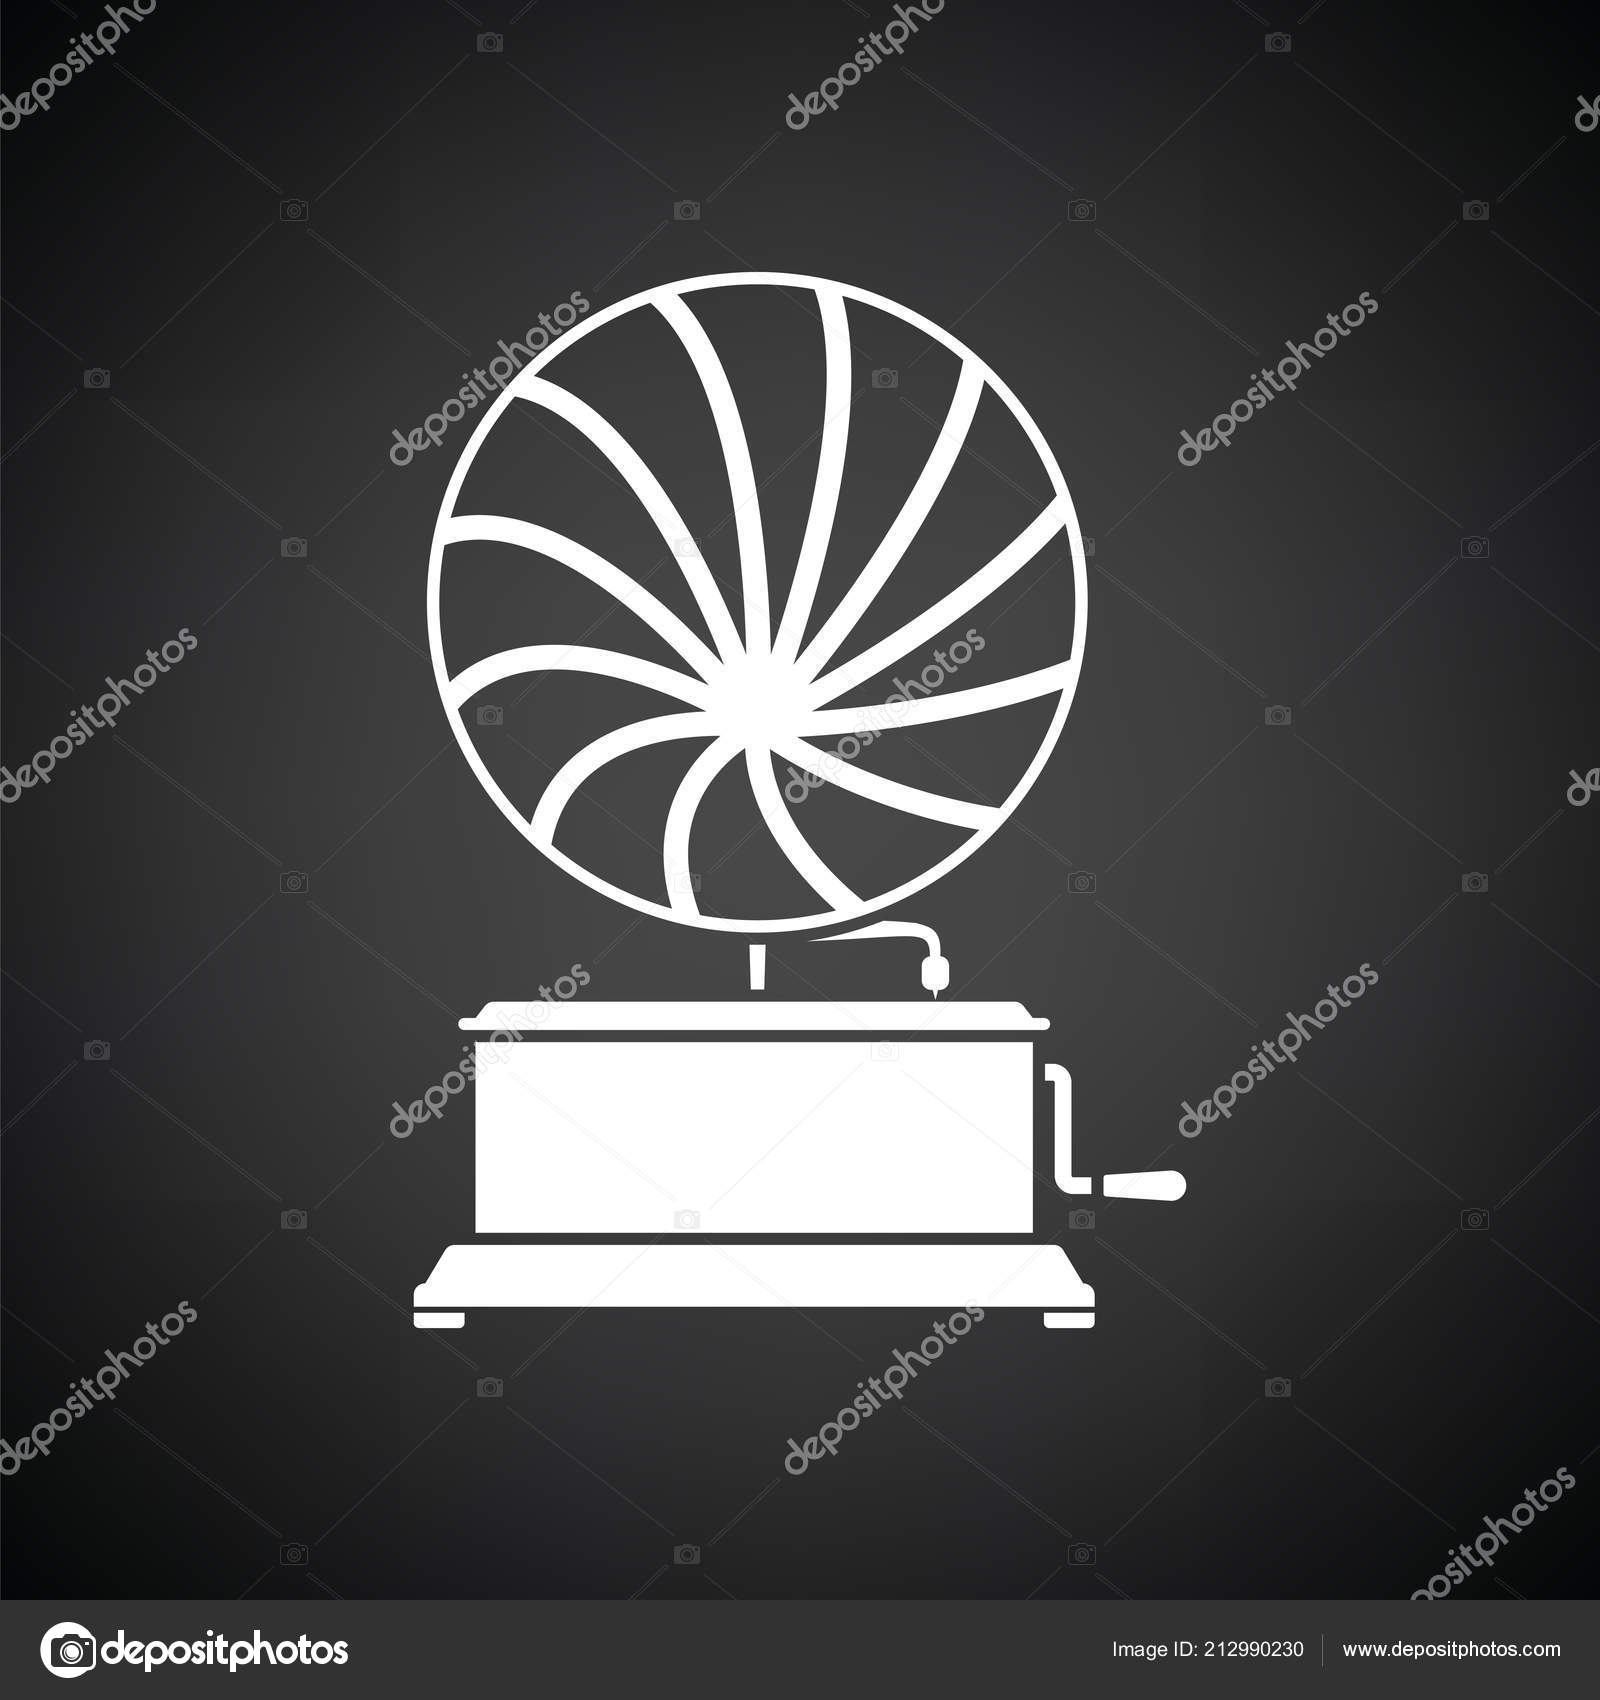 gramophone icon black background white vector illustration stock vector c angelp 212990230 gramophone icon black background white vector illustration stock vector c angelp 212990230